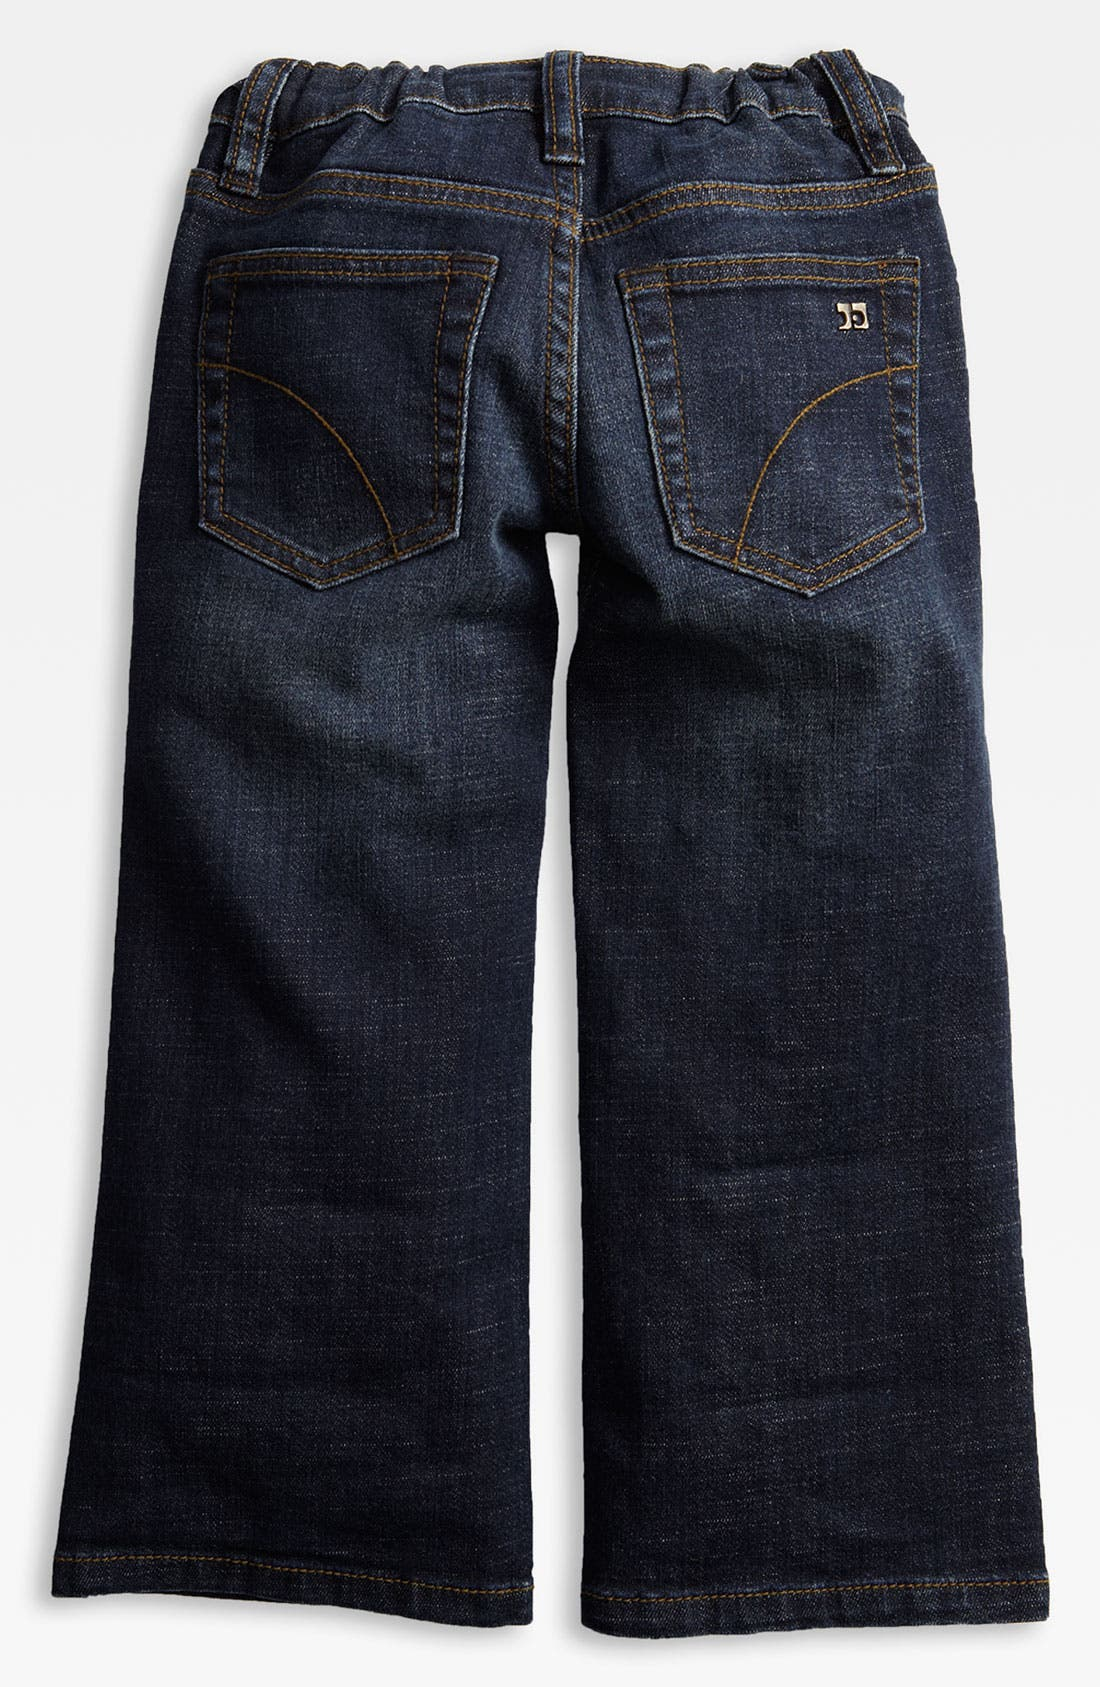 Alternate Image 1 Selected - Joe's 'Rebel' Jeans (Toddler)